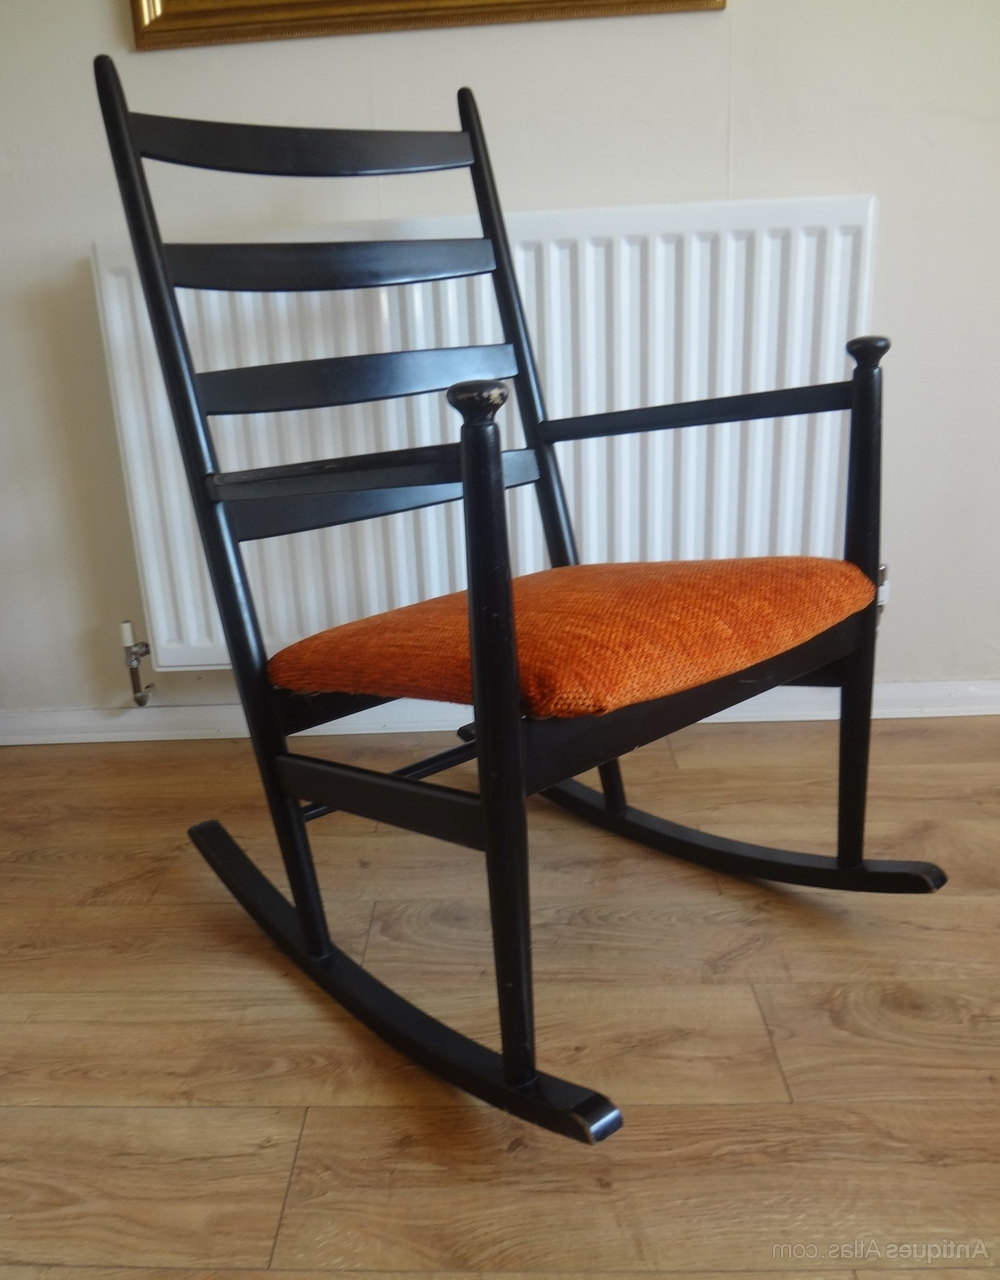 Antiques Atlas – Retro Danish Rocking Chair Inside Popular Retro Rocking Chairs (View 2 of 15)